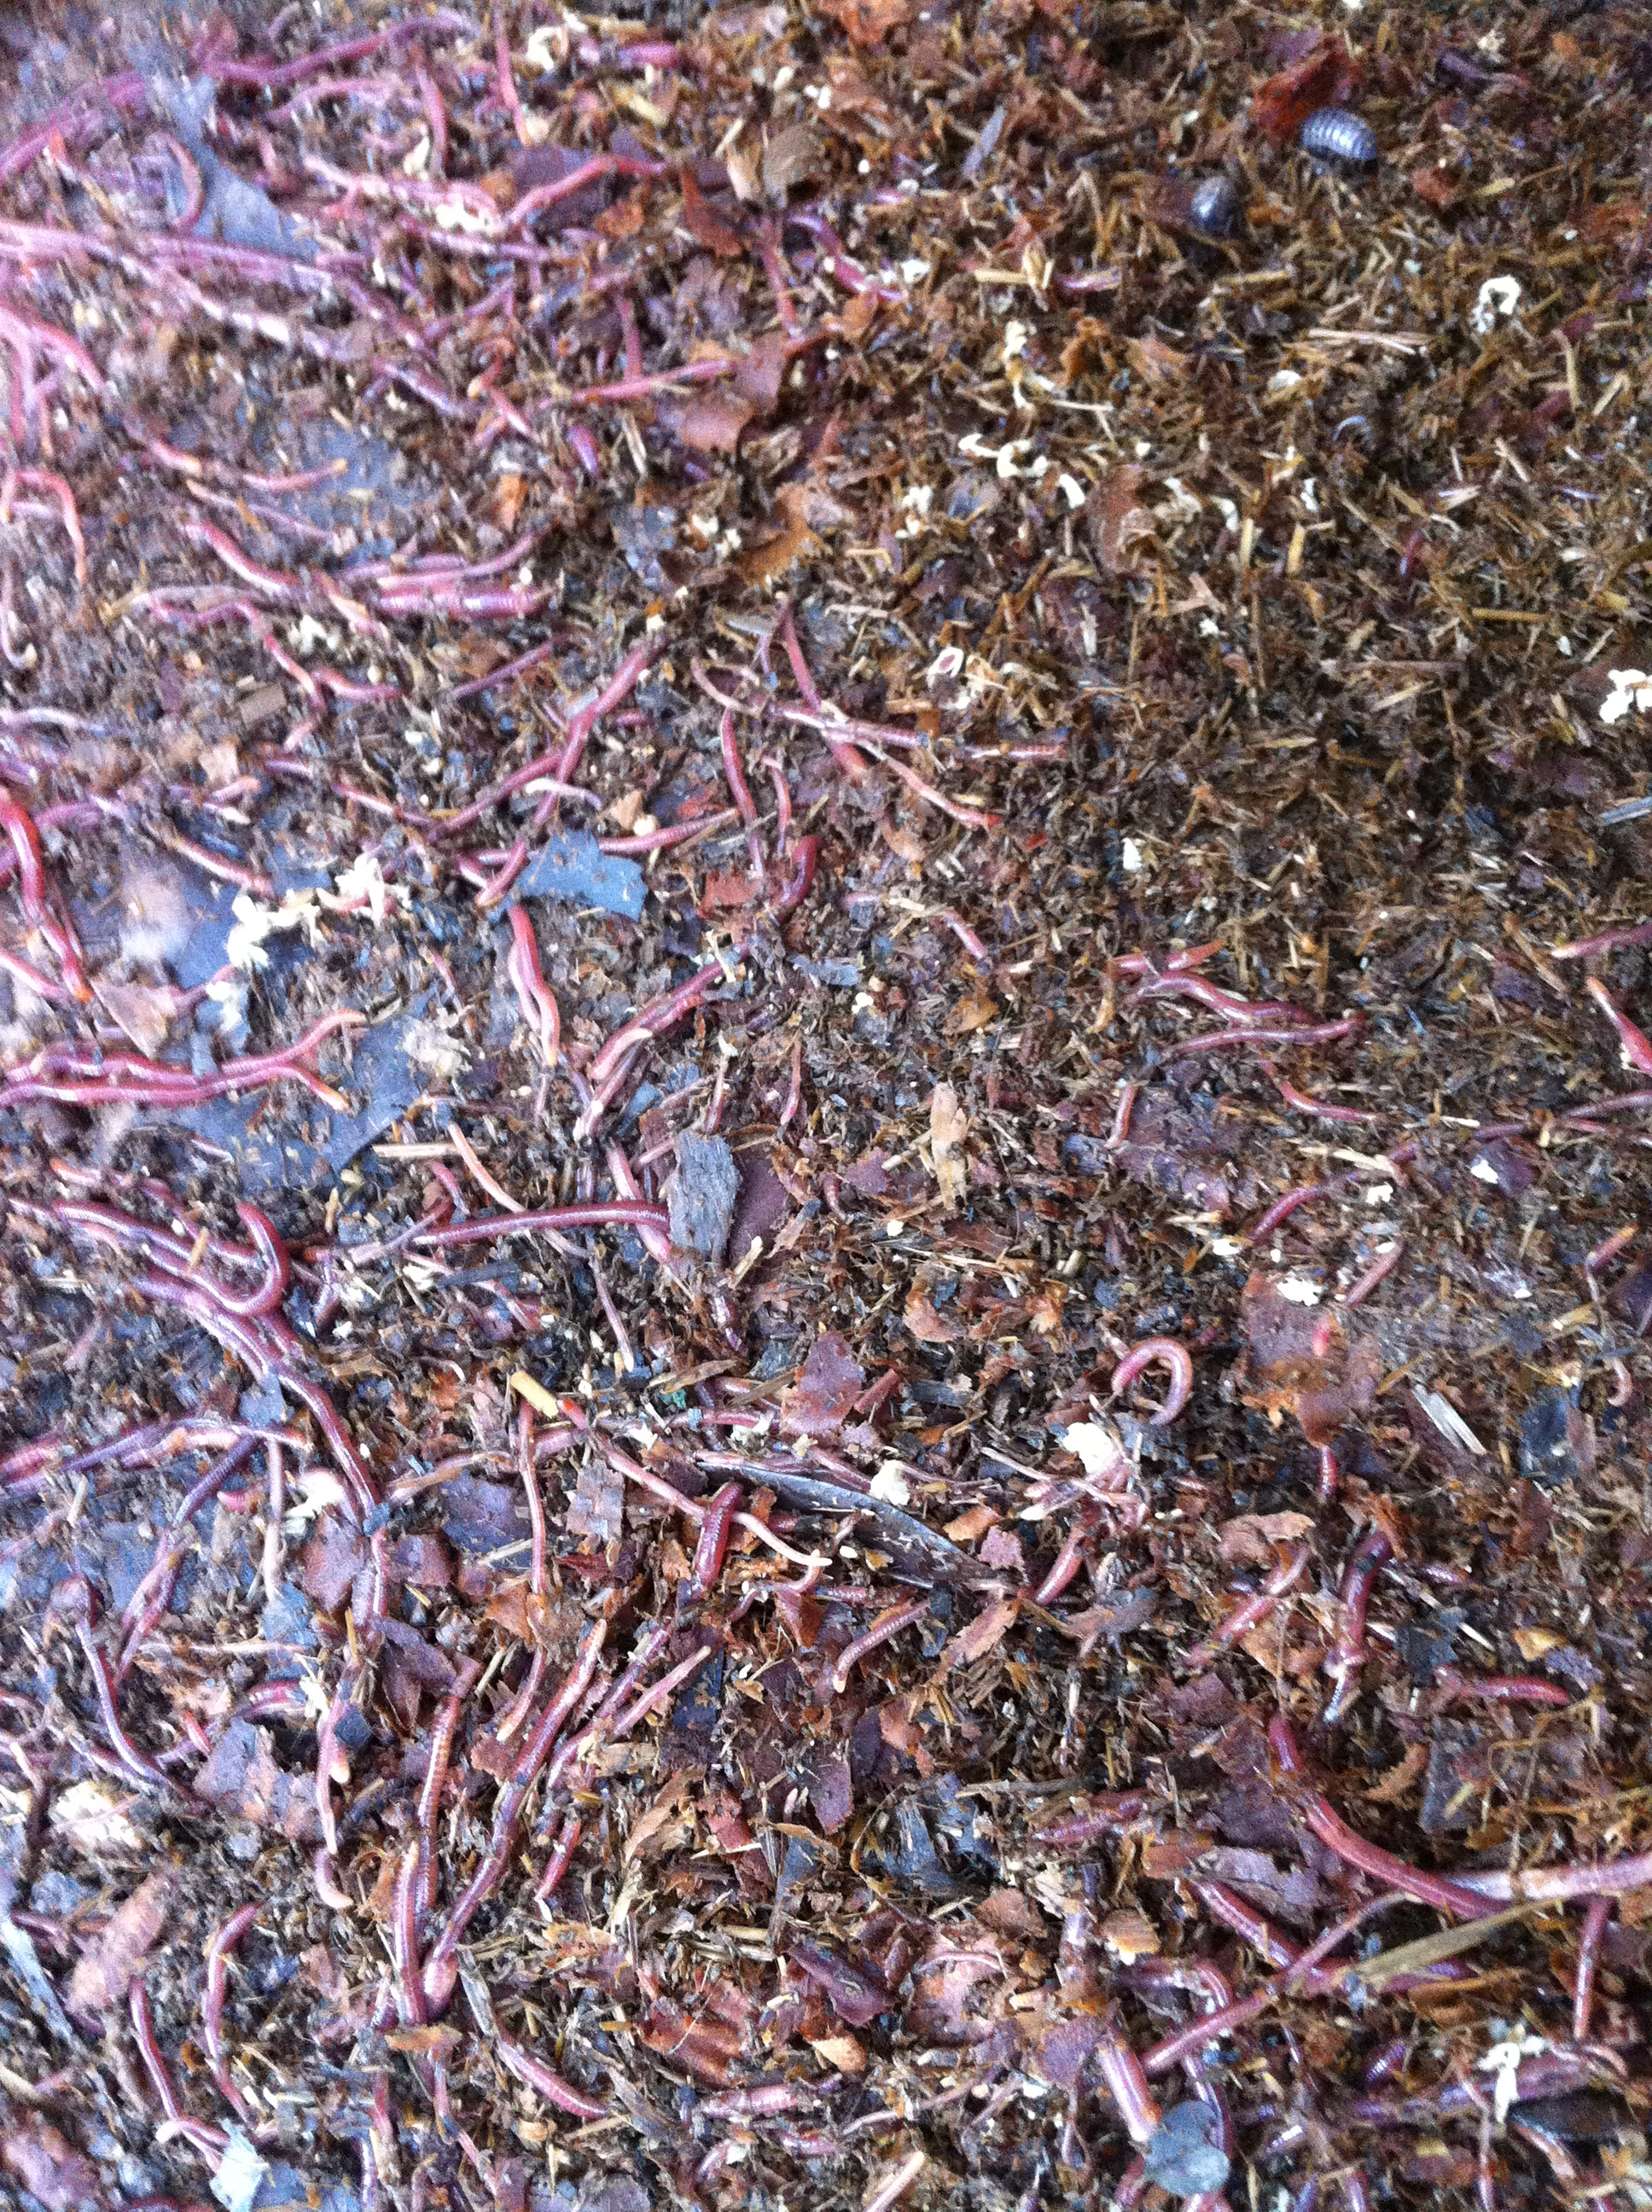 garden worms make your own worm bed organic fertilizer outdoor worm pit red wigglers red worm farming tips red worms for sale in houston